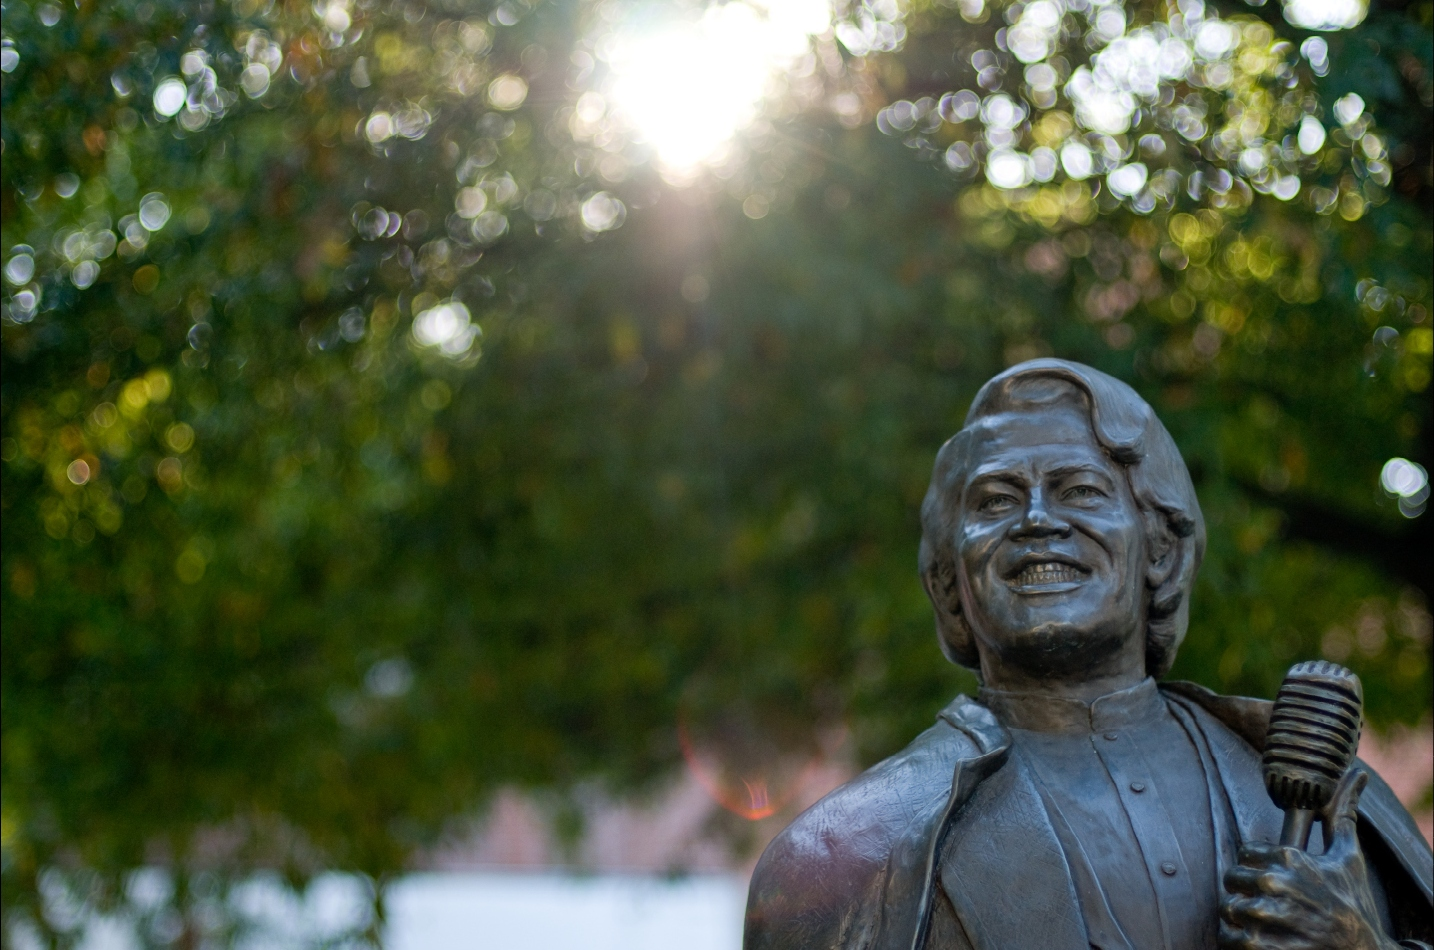 """James-Brown-Statue """"Get on the Good Foot"""" in Augusta, GA. – Celebration of James Brown's Birthday (May 3rd)"""